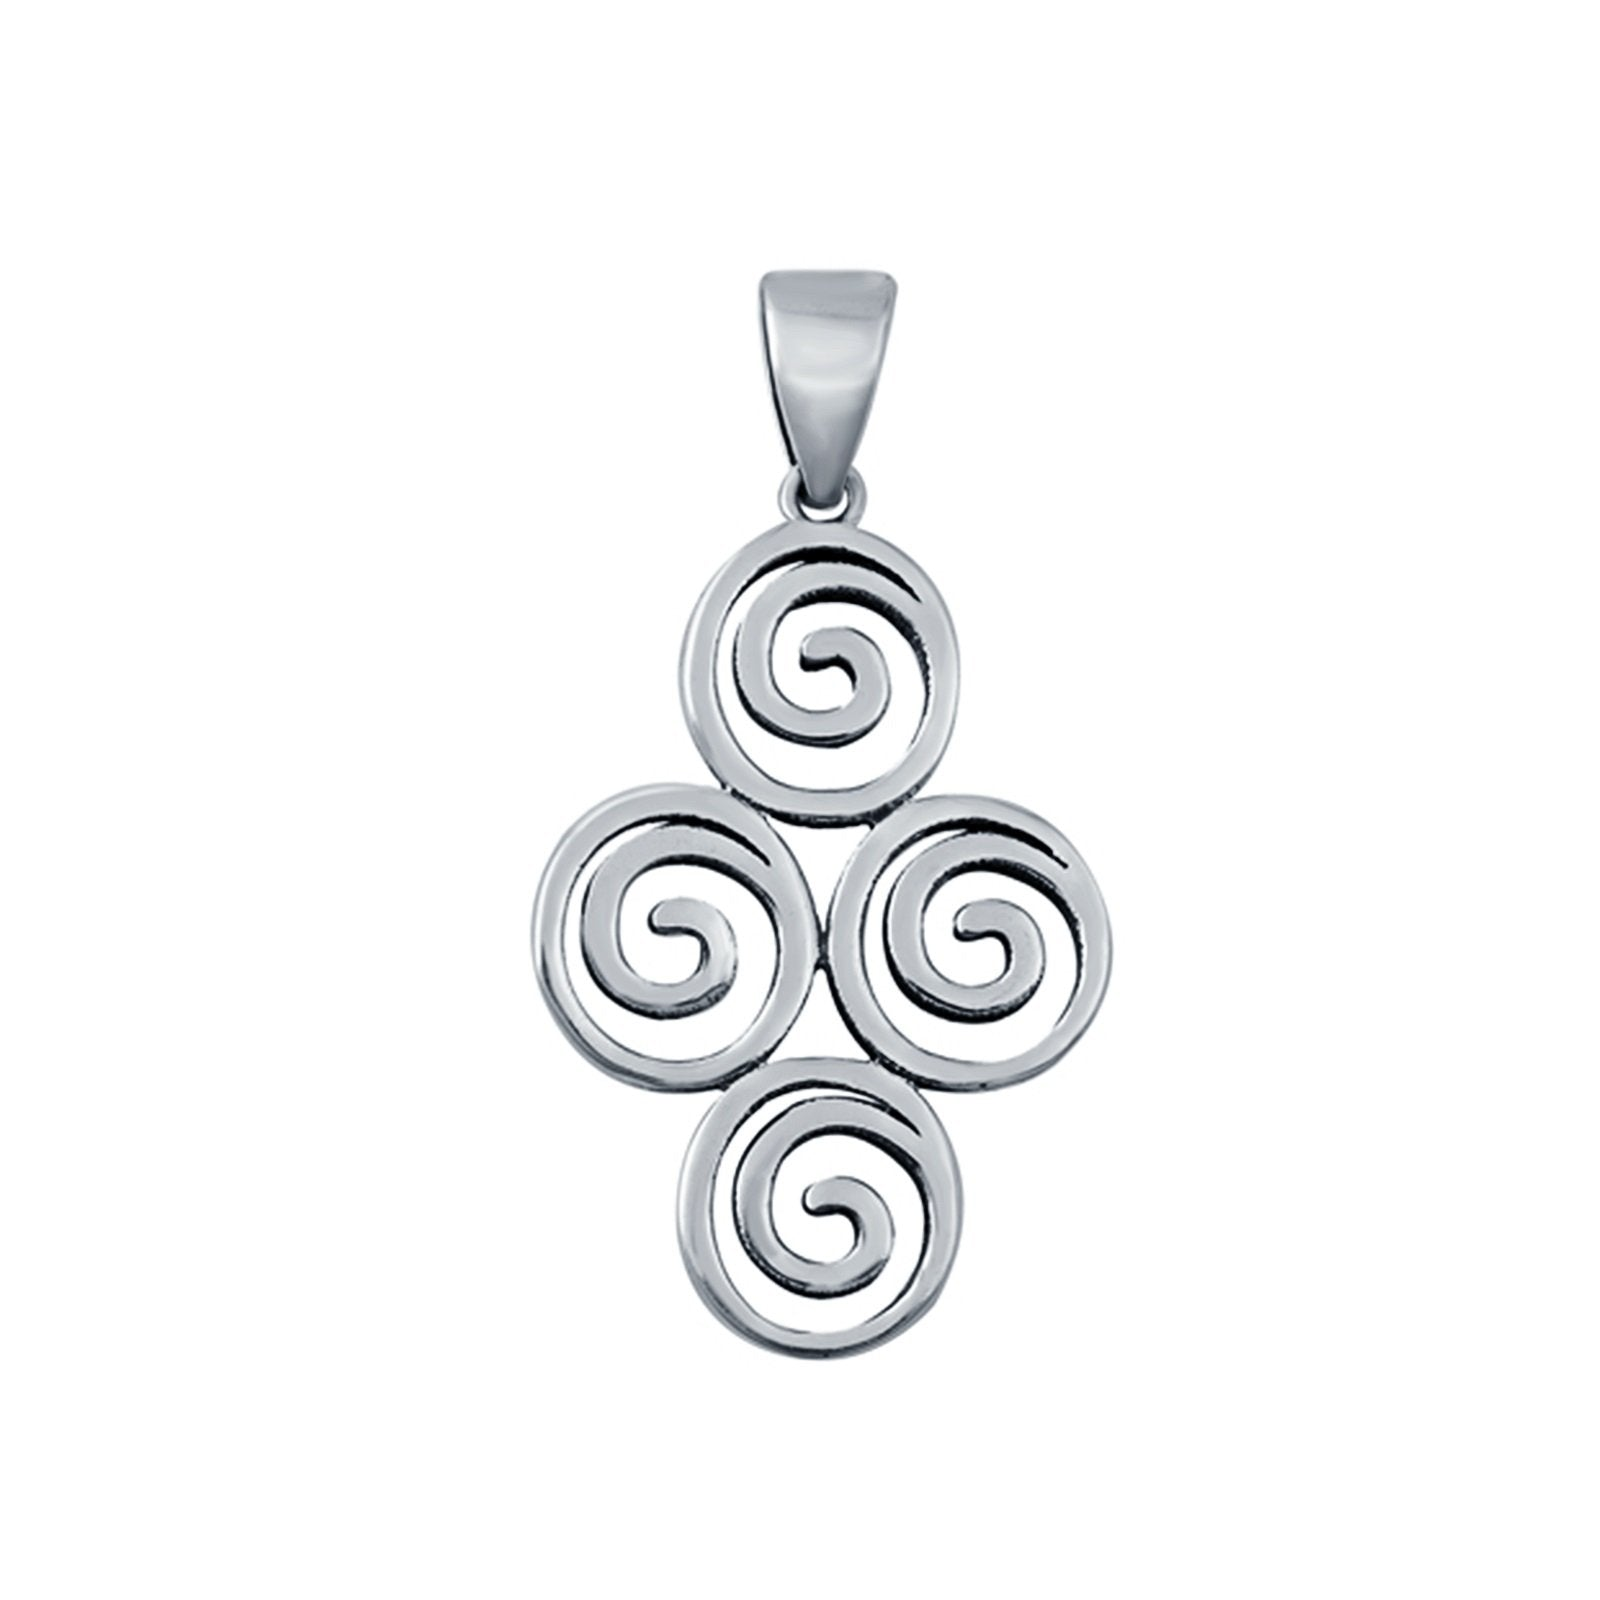 Fashion Jewelry Swirls Charm Pendant 925 Sterling Silver (26mm)